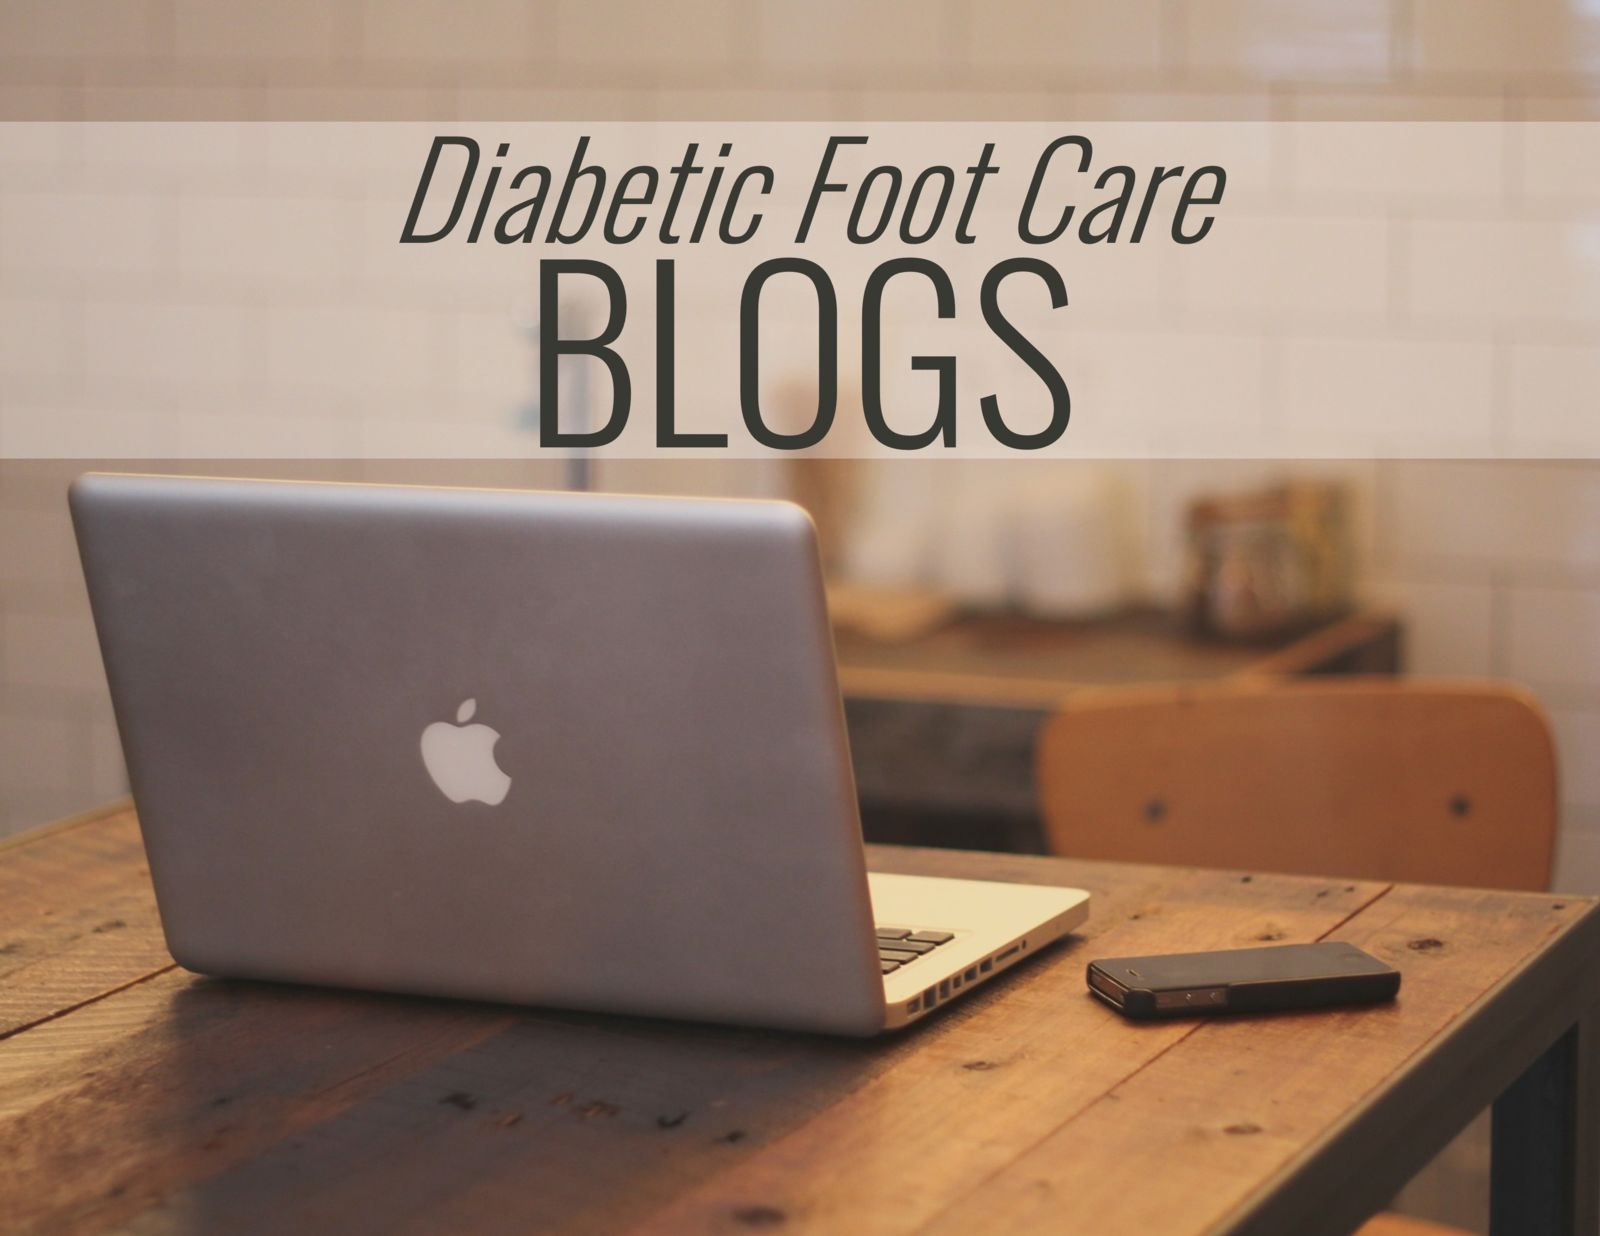 computer on a desk and the words: Diabetic Foot Care Blogs